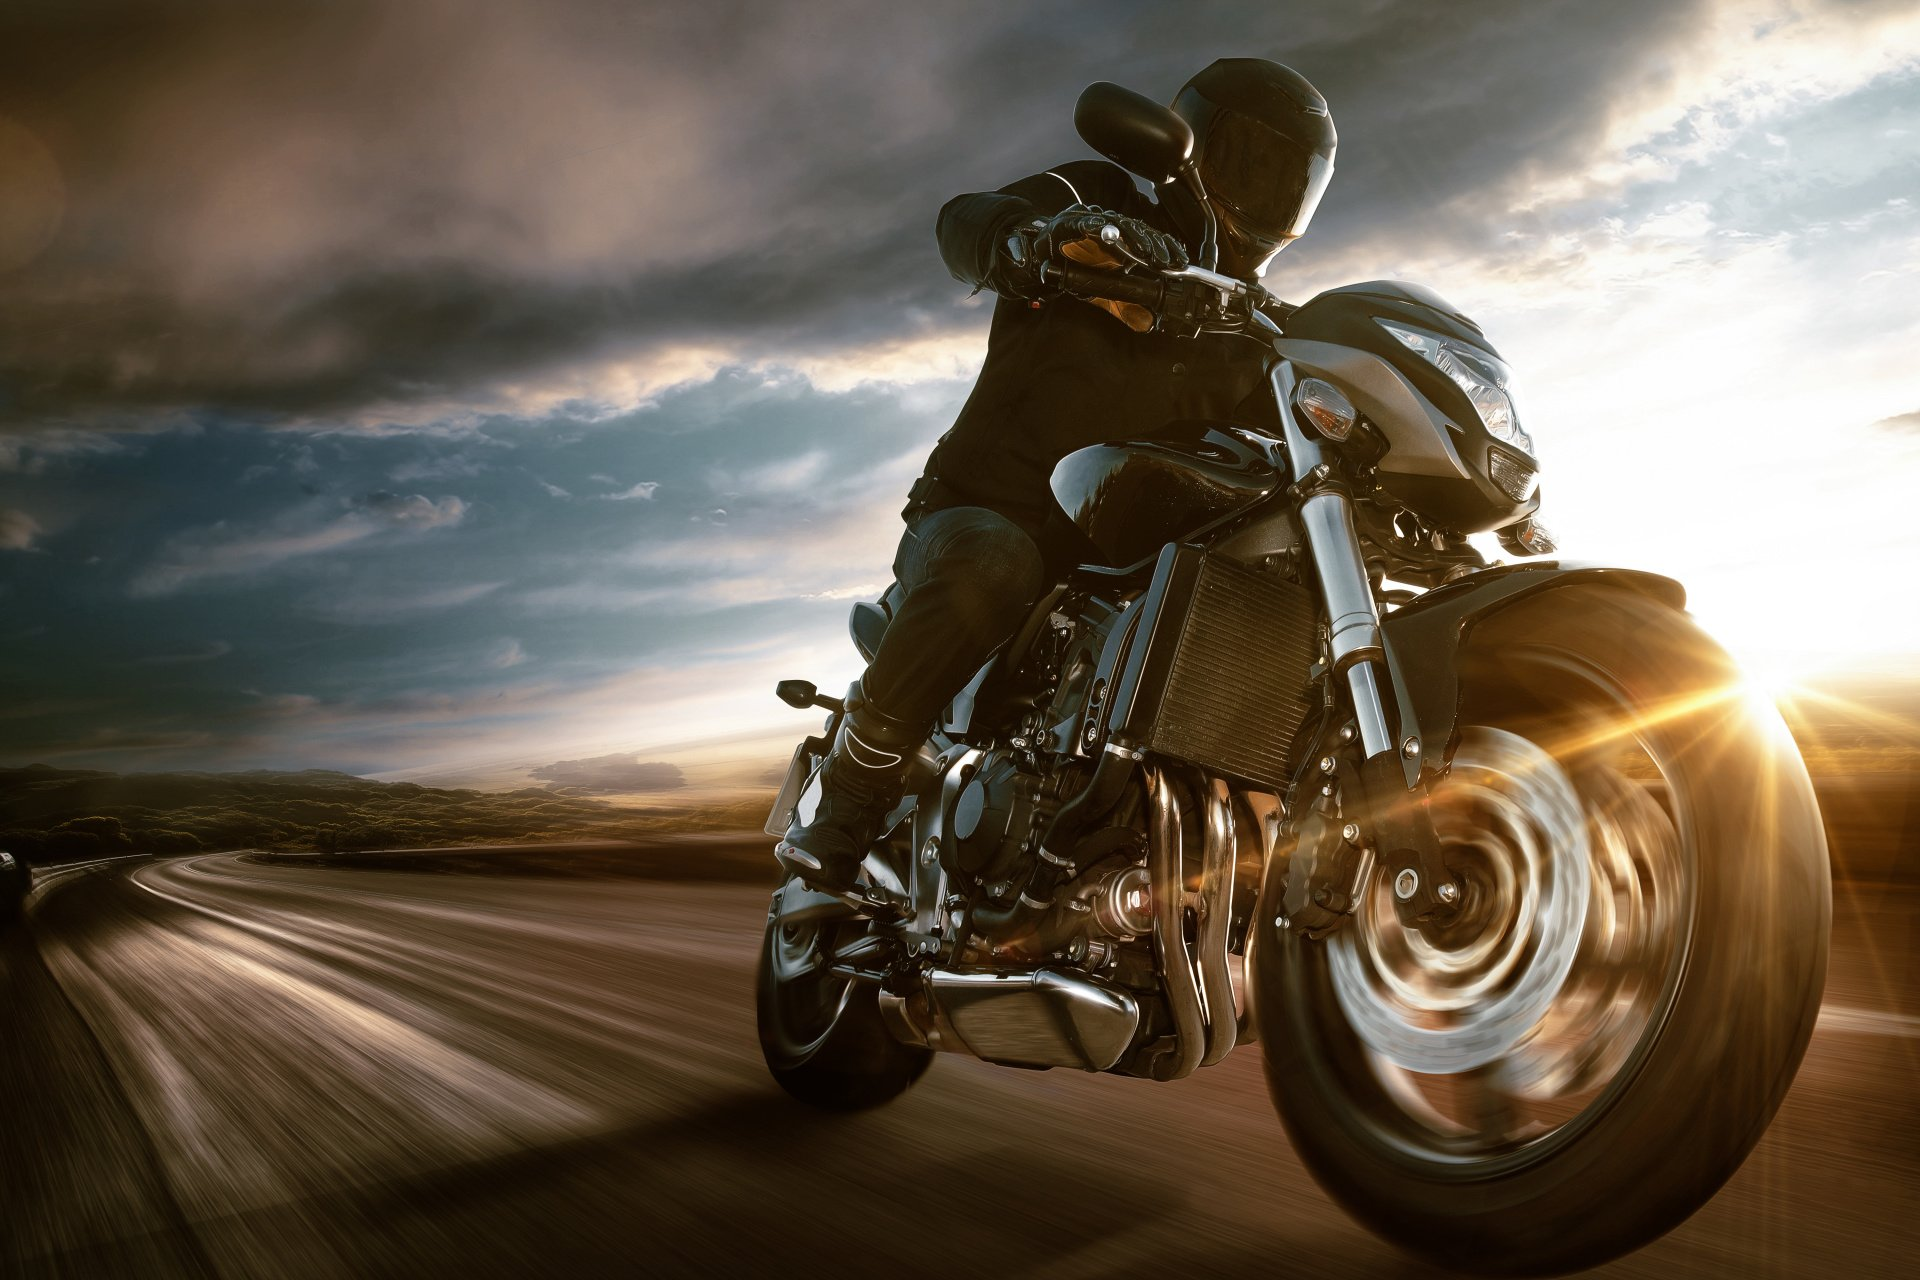 Motorcycle Insurance In El Paso Tx Get A Free Online Quote Today